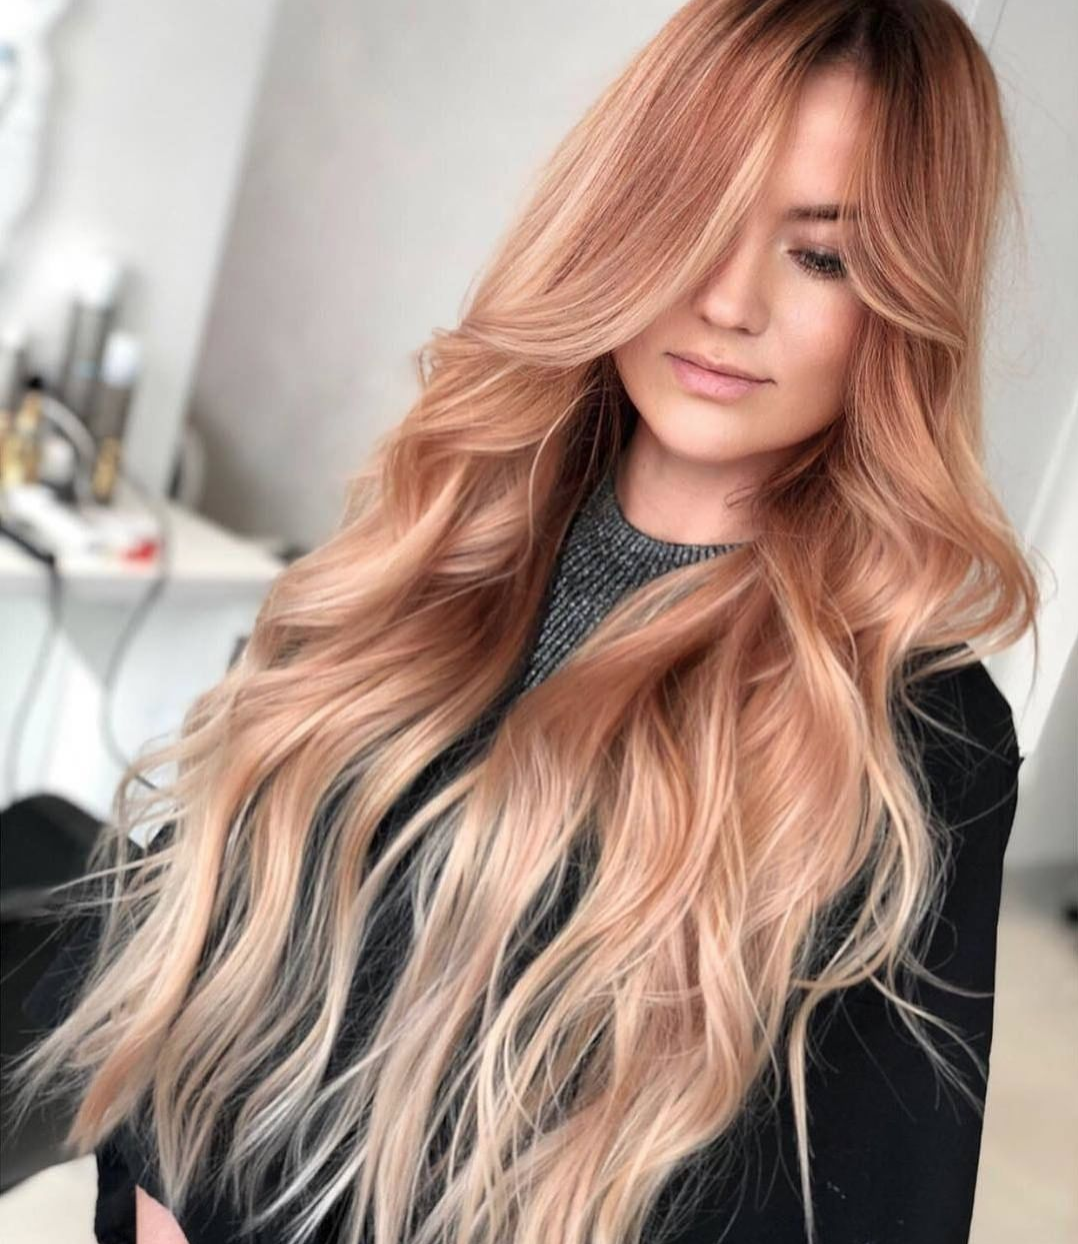 13 Gorgeous Hair Color Ideas to Try in the New Year